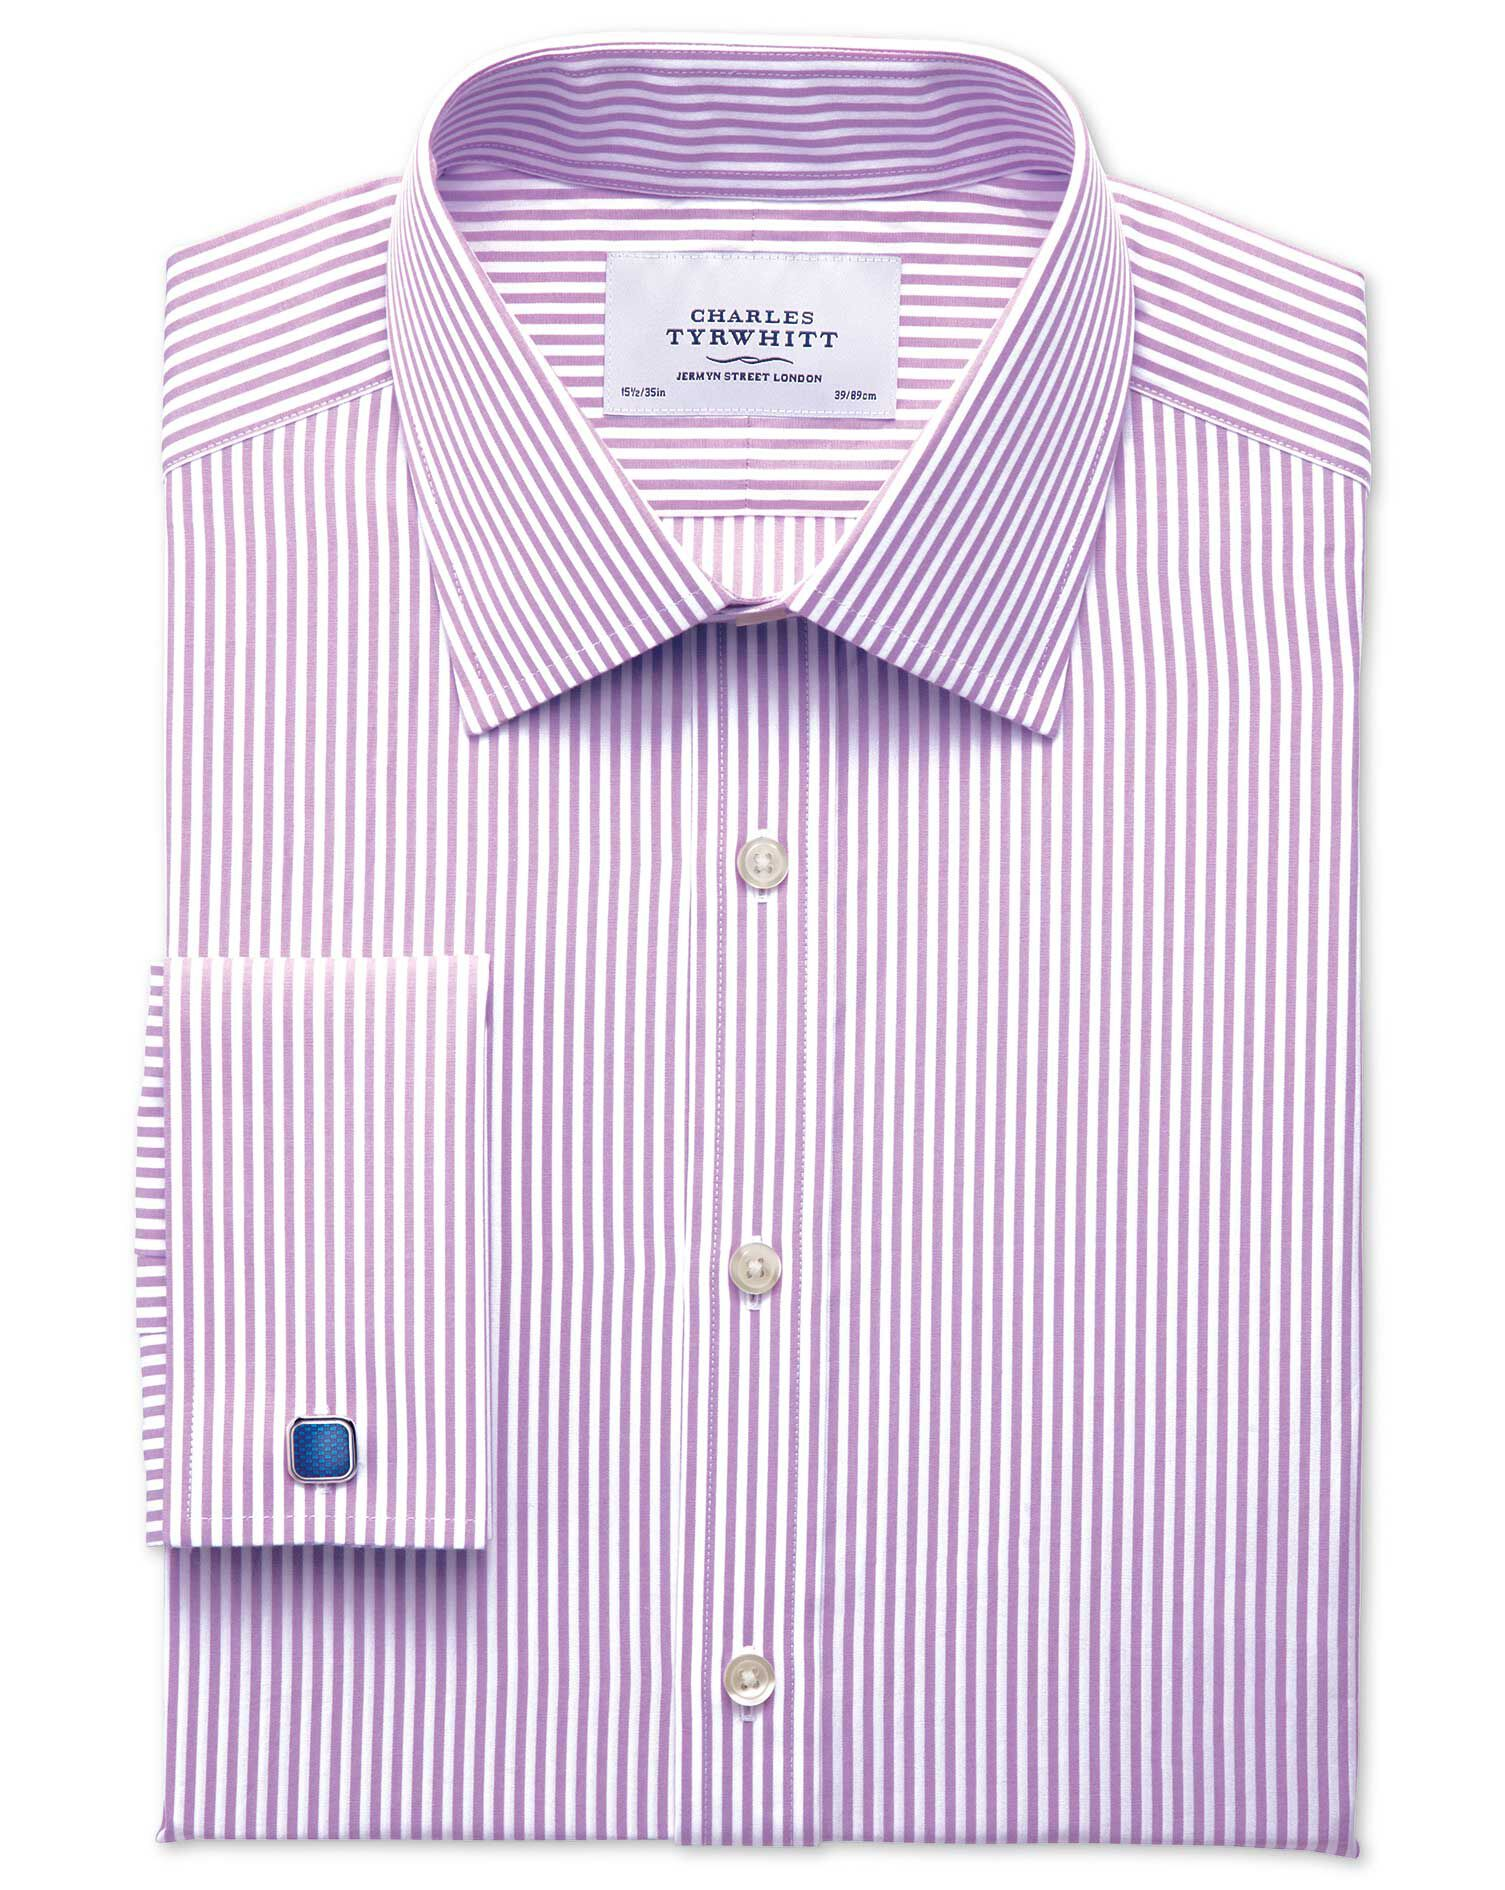 Slim Fit Bengal Stripe Lilac Cotton Formal Shirt Double Cuff Size 16.5/36 by Charles Tyrwhitt